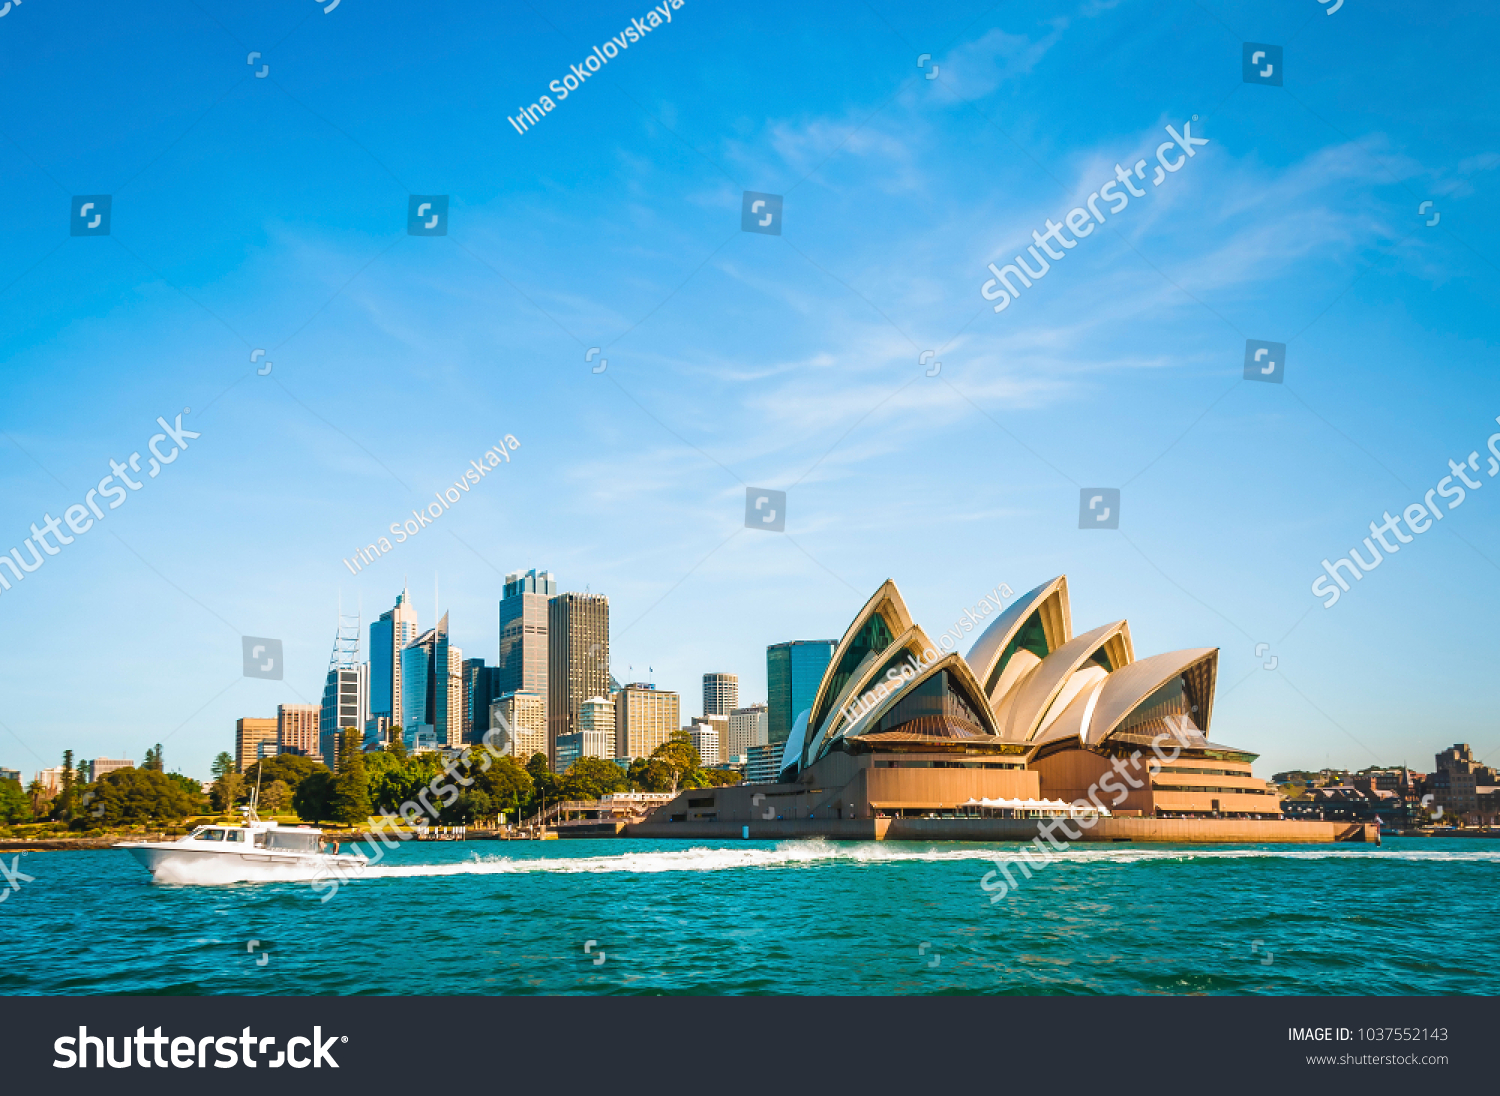 The city skyline of Sydney, Australia. Circular Quay and Opera House. #1037552143